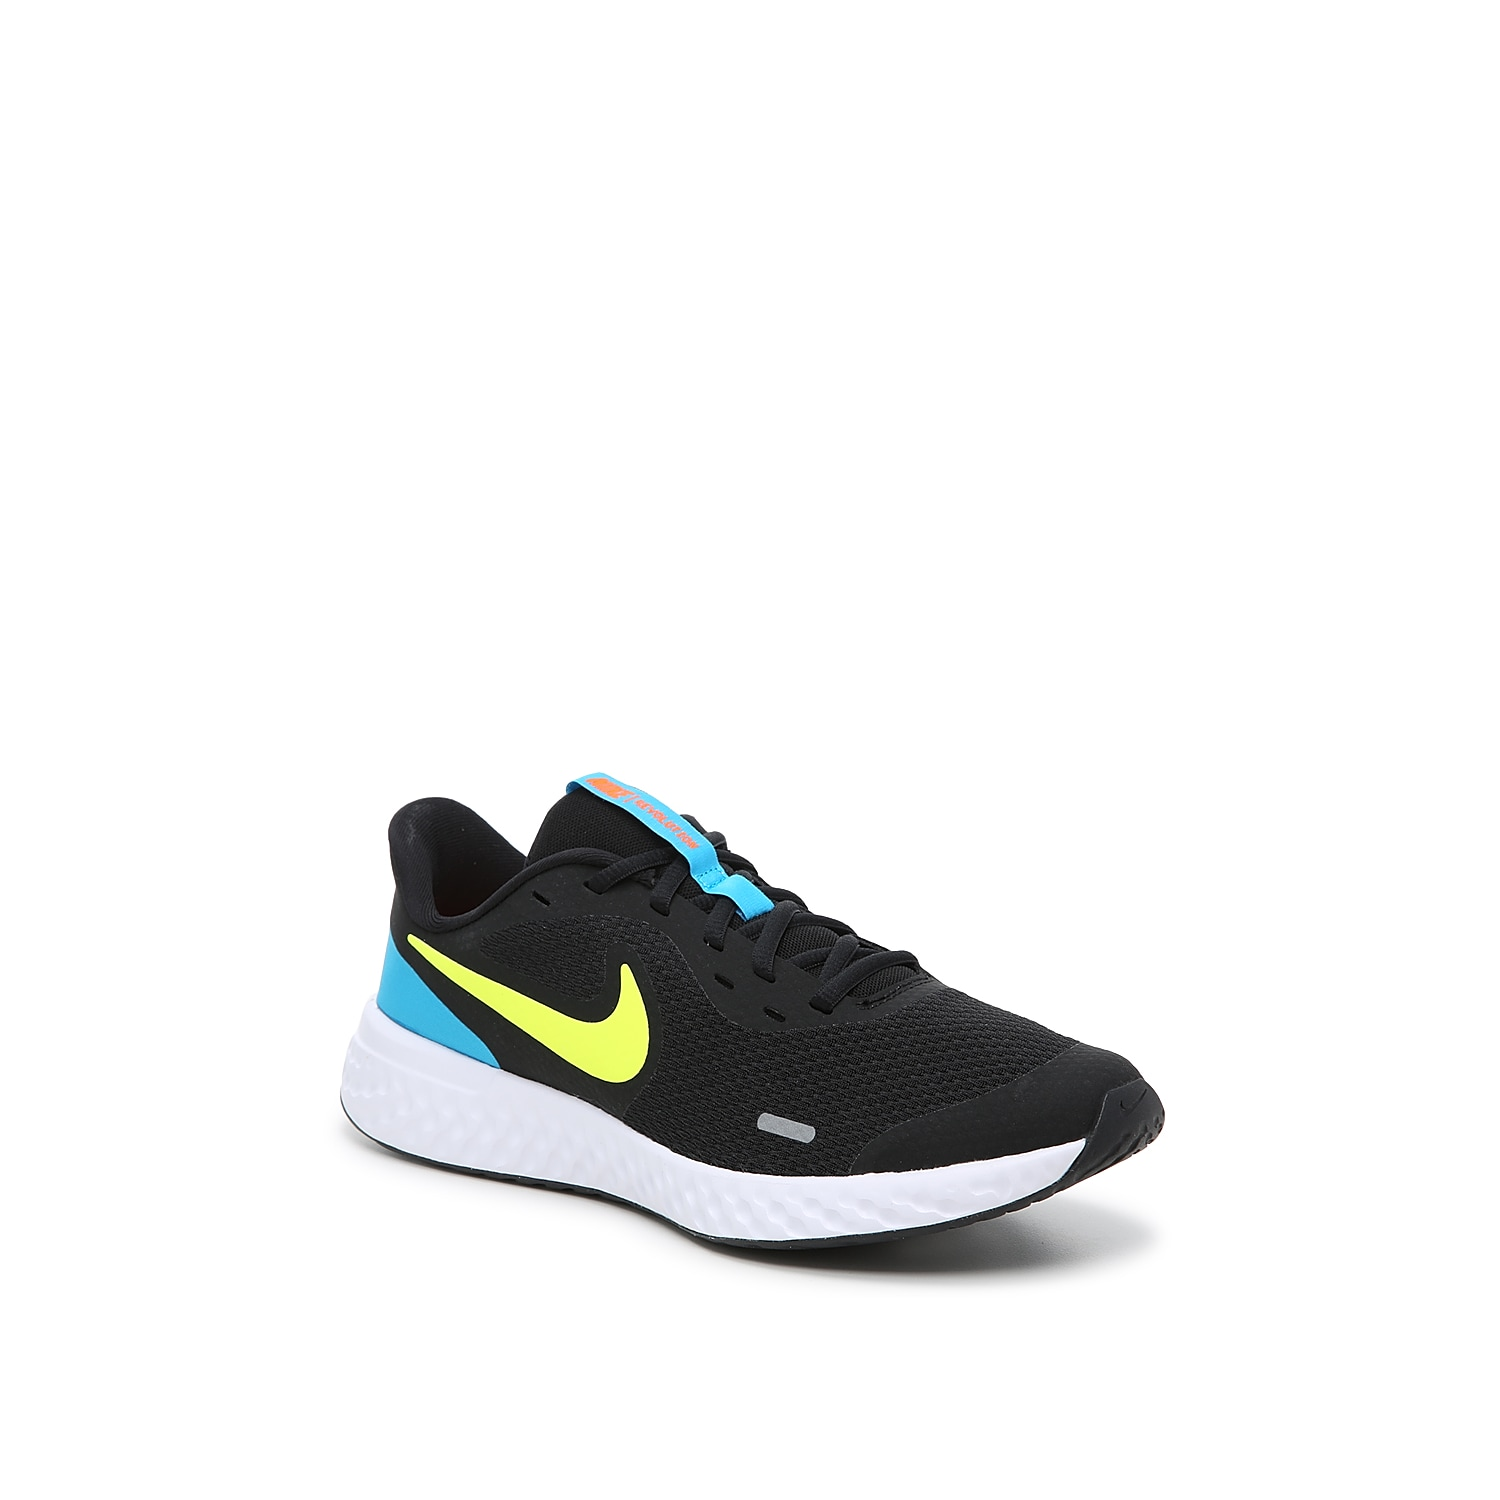 The ultra-lightweight Nike Revolution 5 sneaker is a playful pair that treats tiny toes to running bliss! This lace-up pair features a vibrant hue that will make his outfit stand apart from the rest!Not sure which size to order? Clickhereto check out our Kids' Measuring Guide! For more helpful tips and sizing FAQs, clickhere.